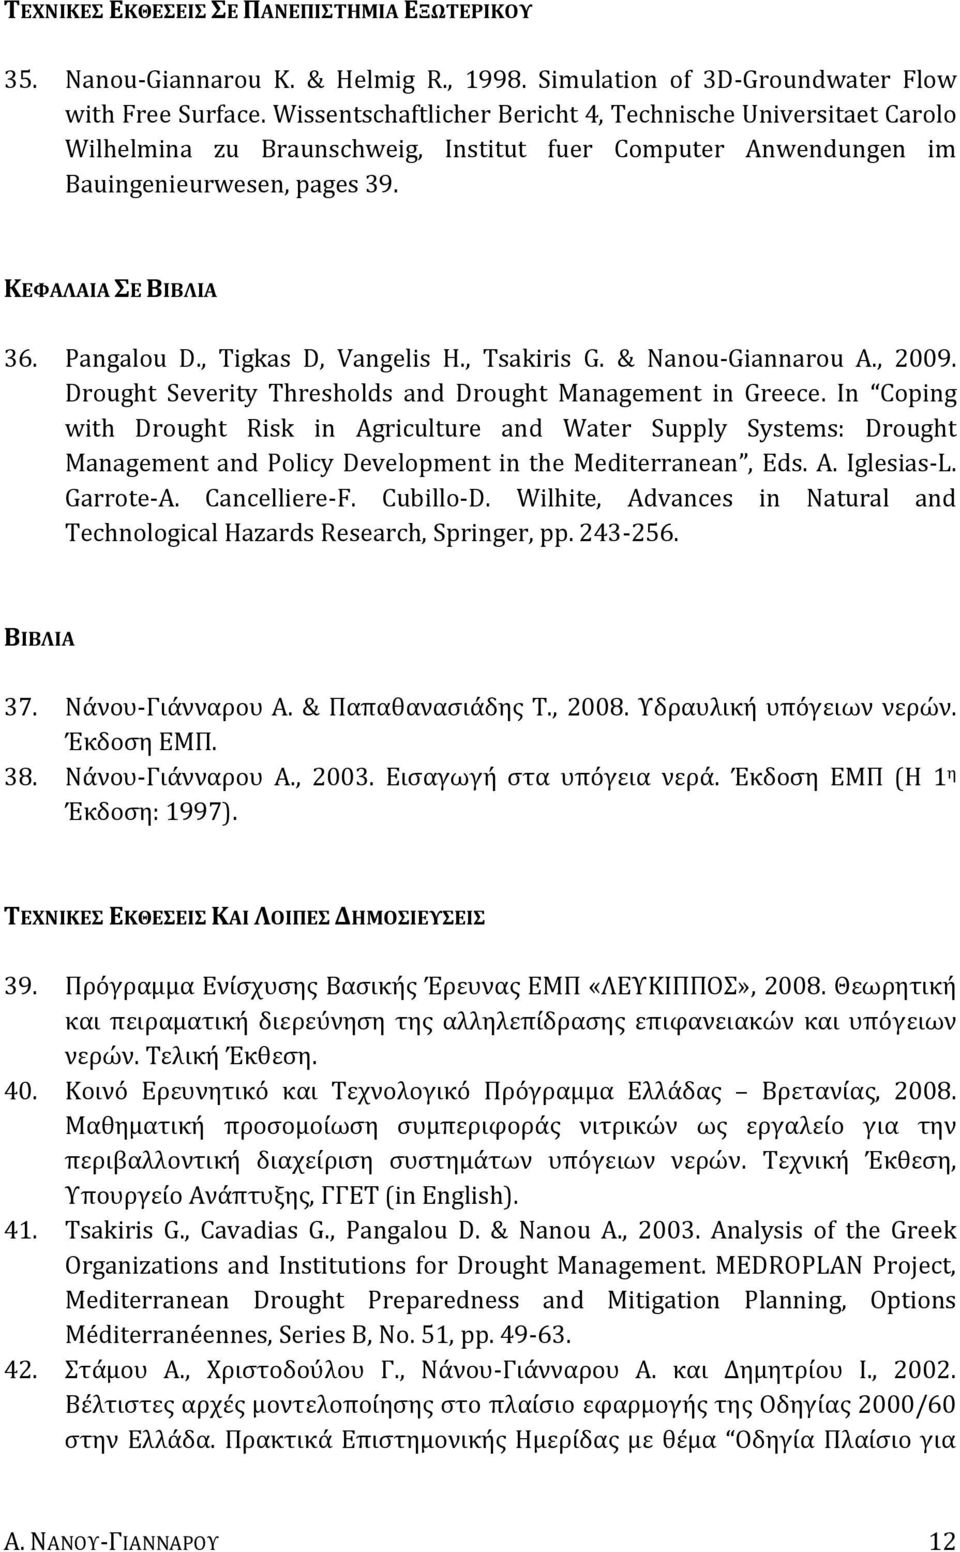 , Tigkas D, Vangelis H., Tsakiris G. & Nanou-Giannarou A., 2009. Drought Severity Thresholds and Drought Management in Greece.